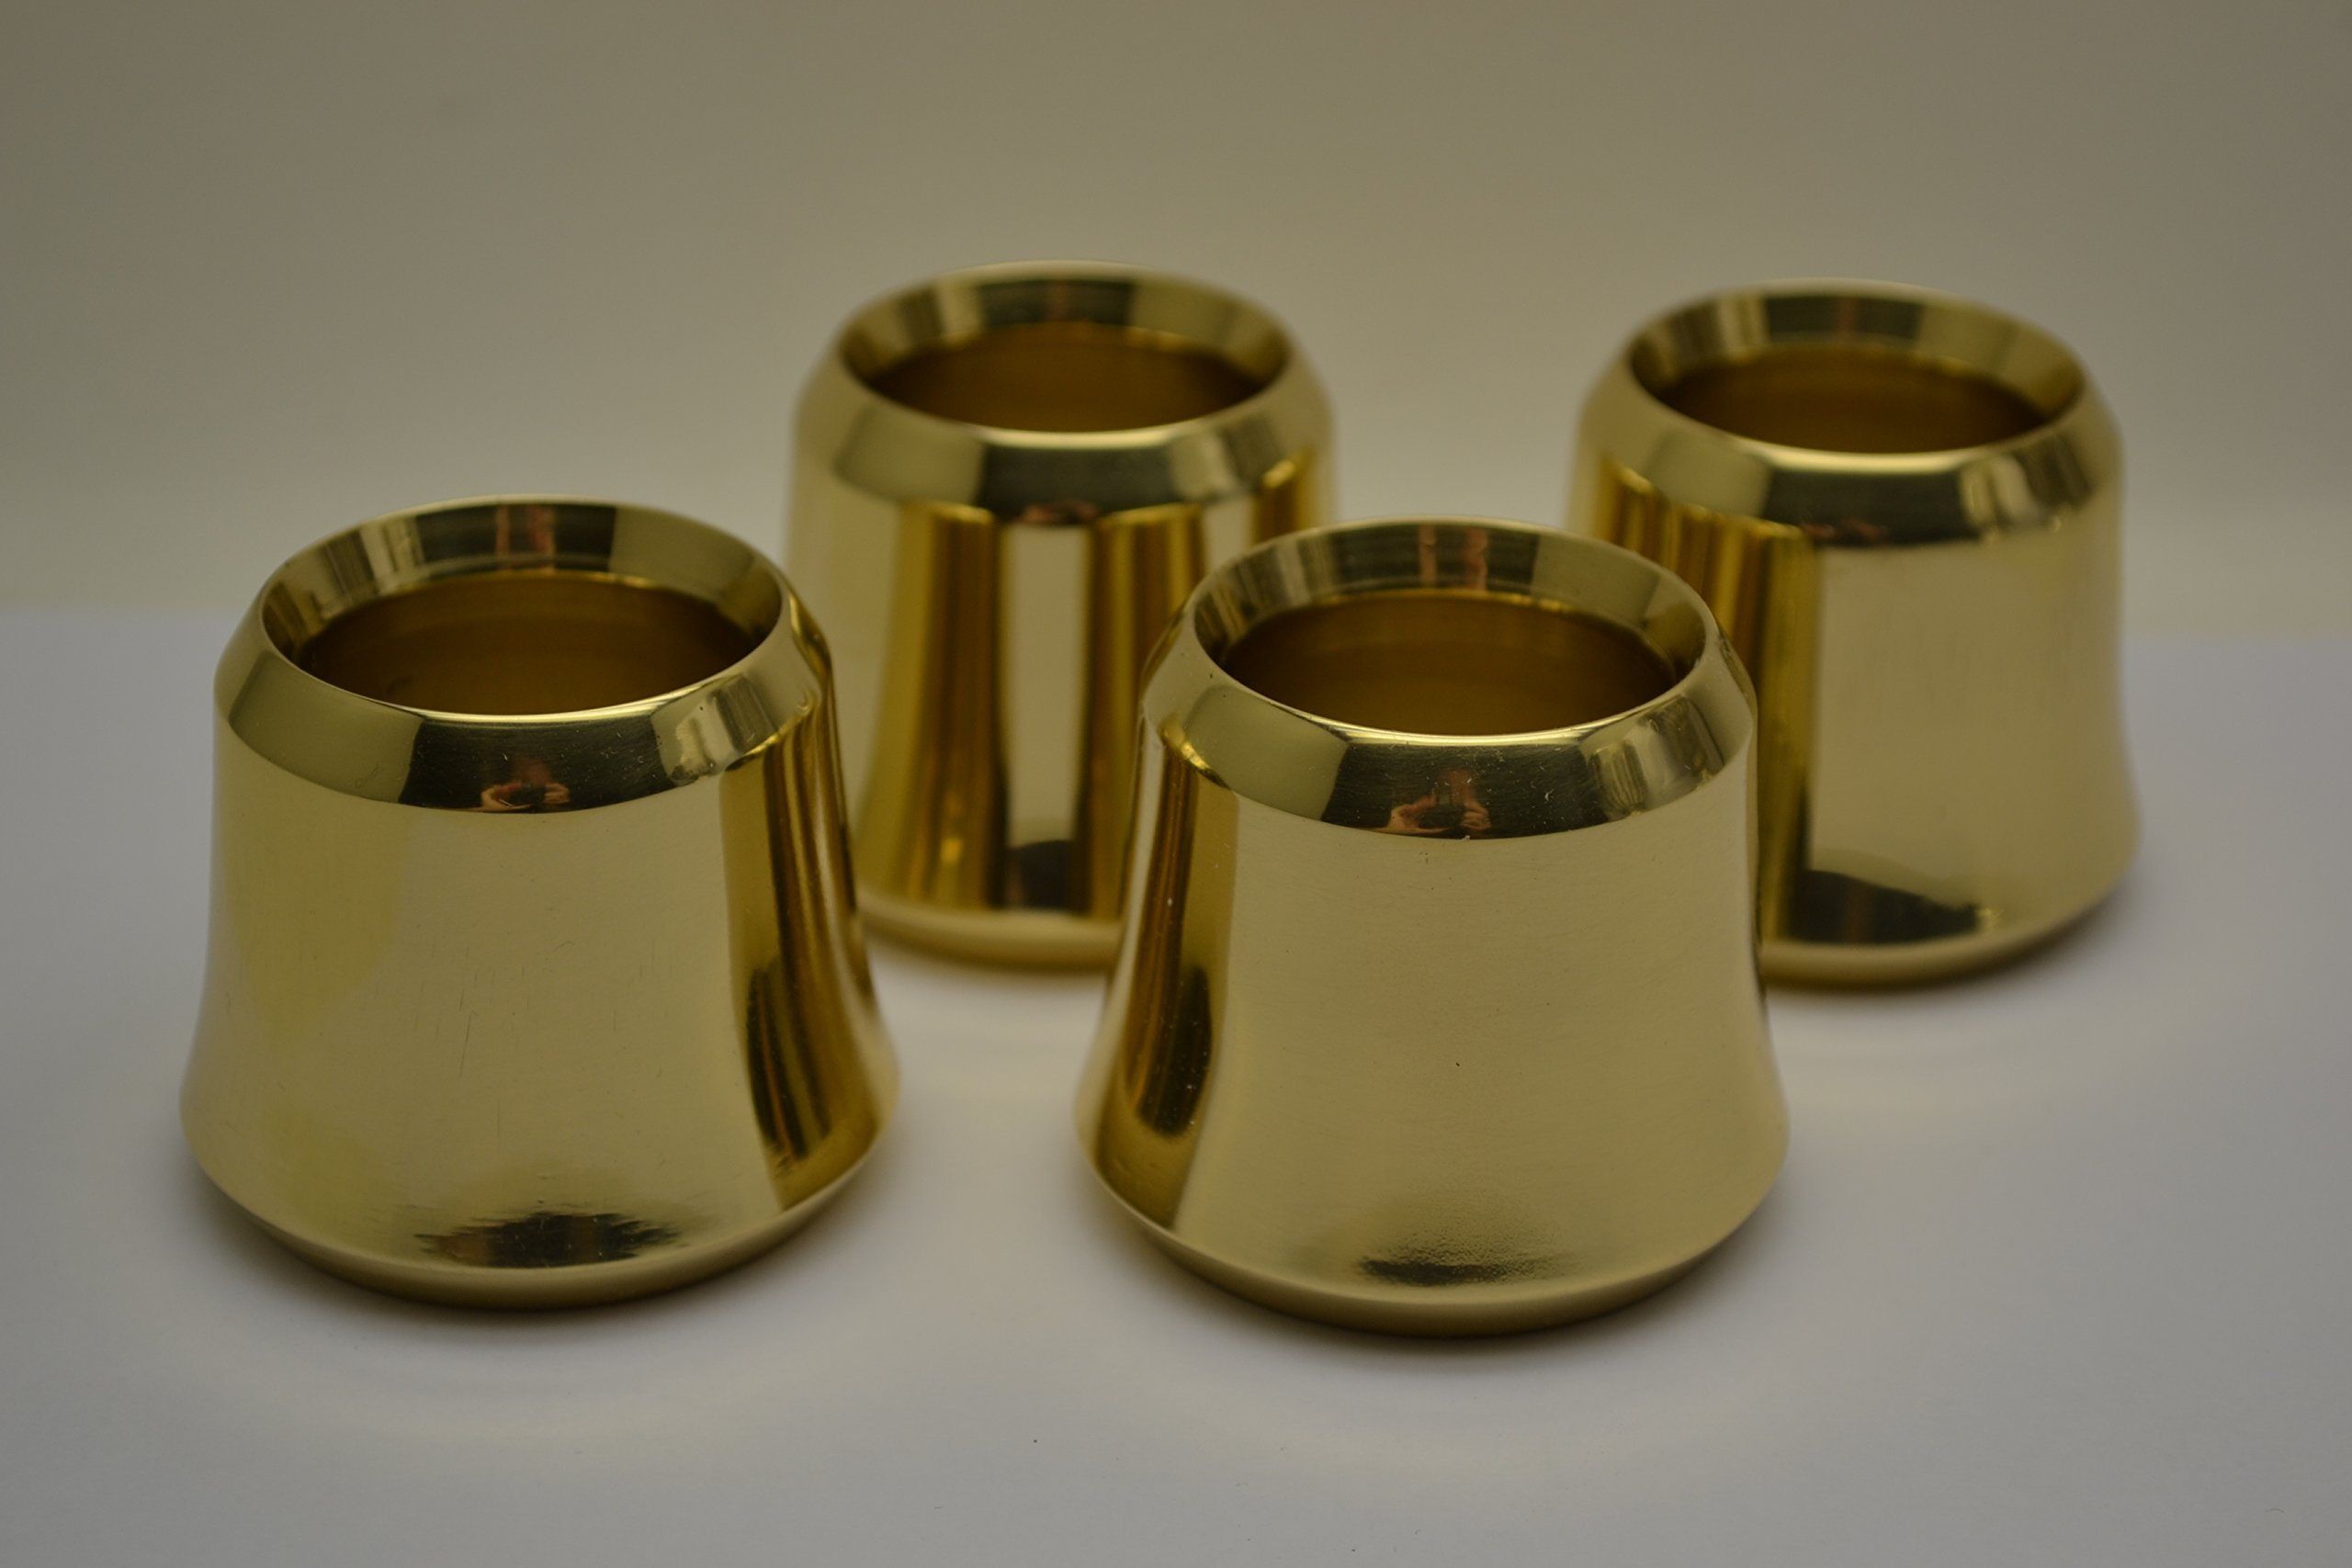 Classical Church Goods Set of 4 Solid Brass Candle Followers 1 1/2'' Size, Burners (Set of 4) by Classical Church Goods (Image #1)